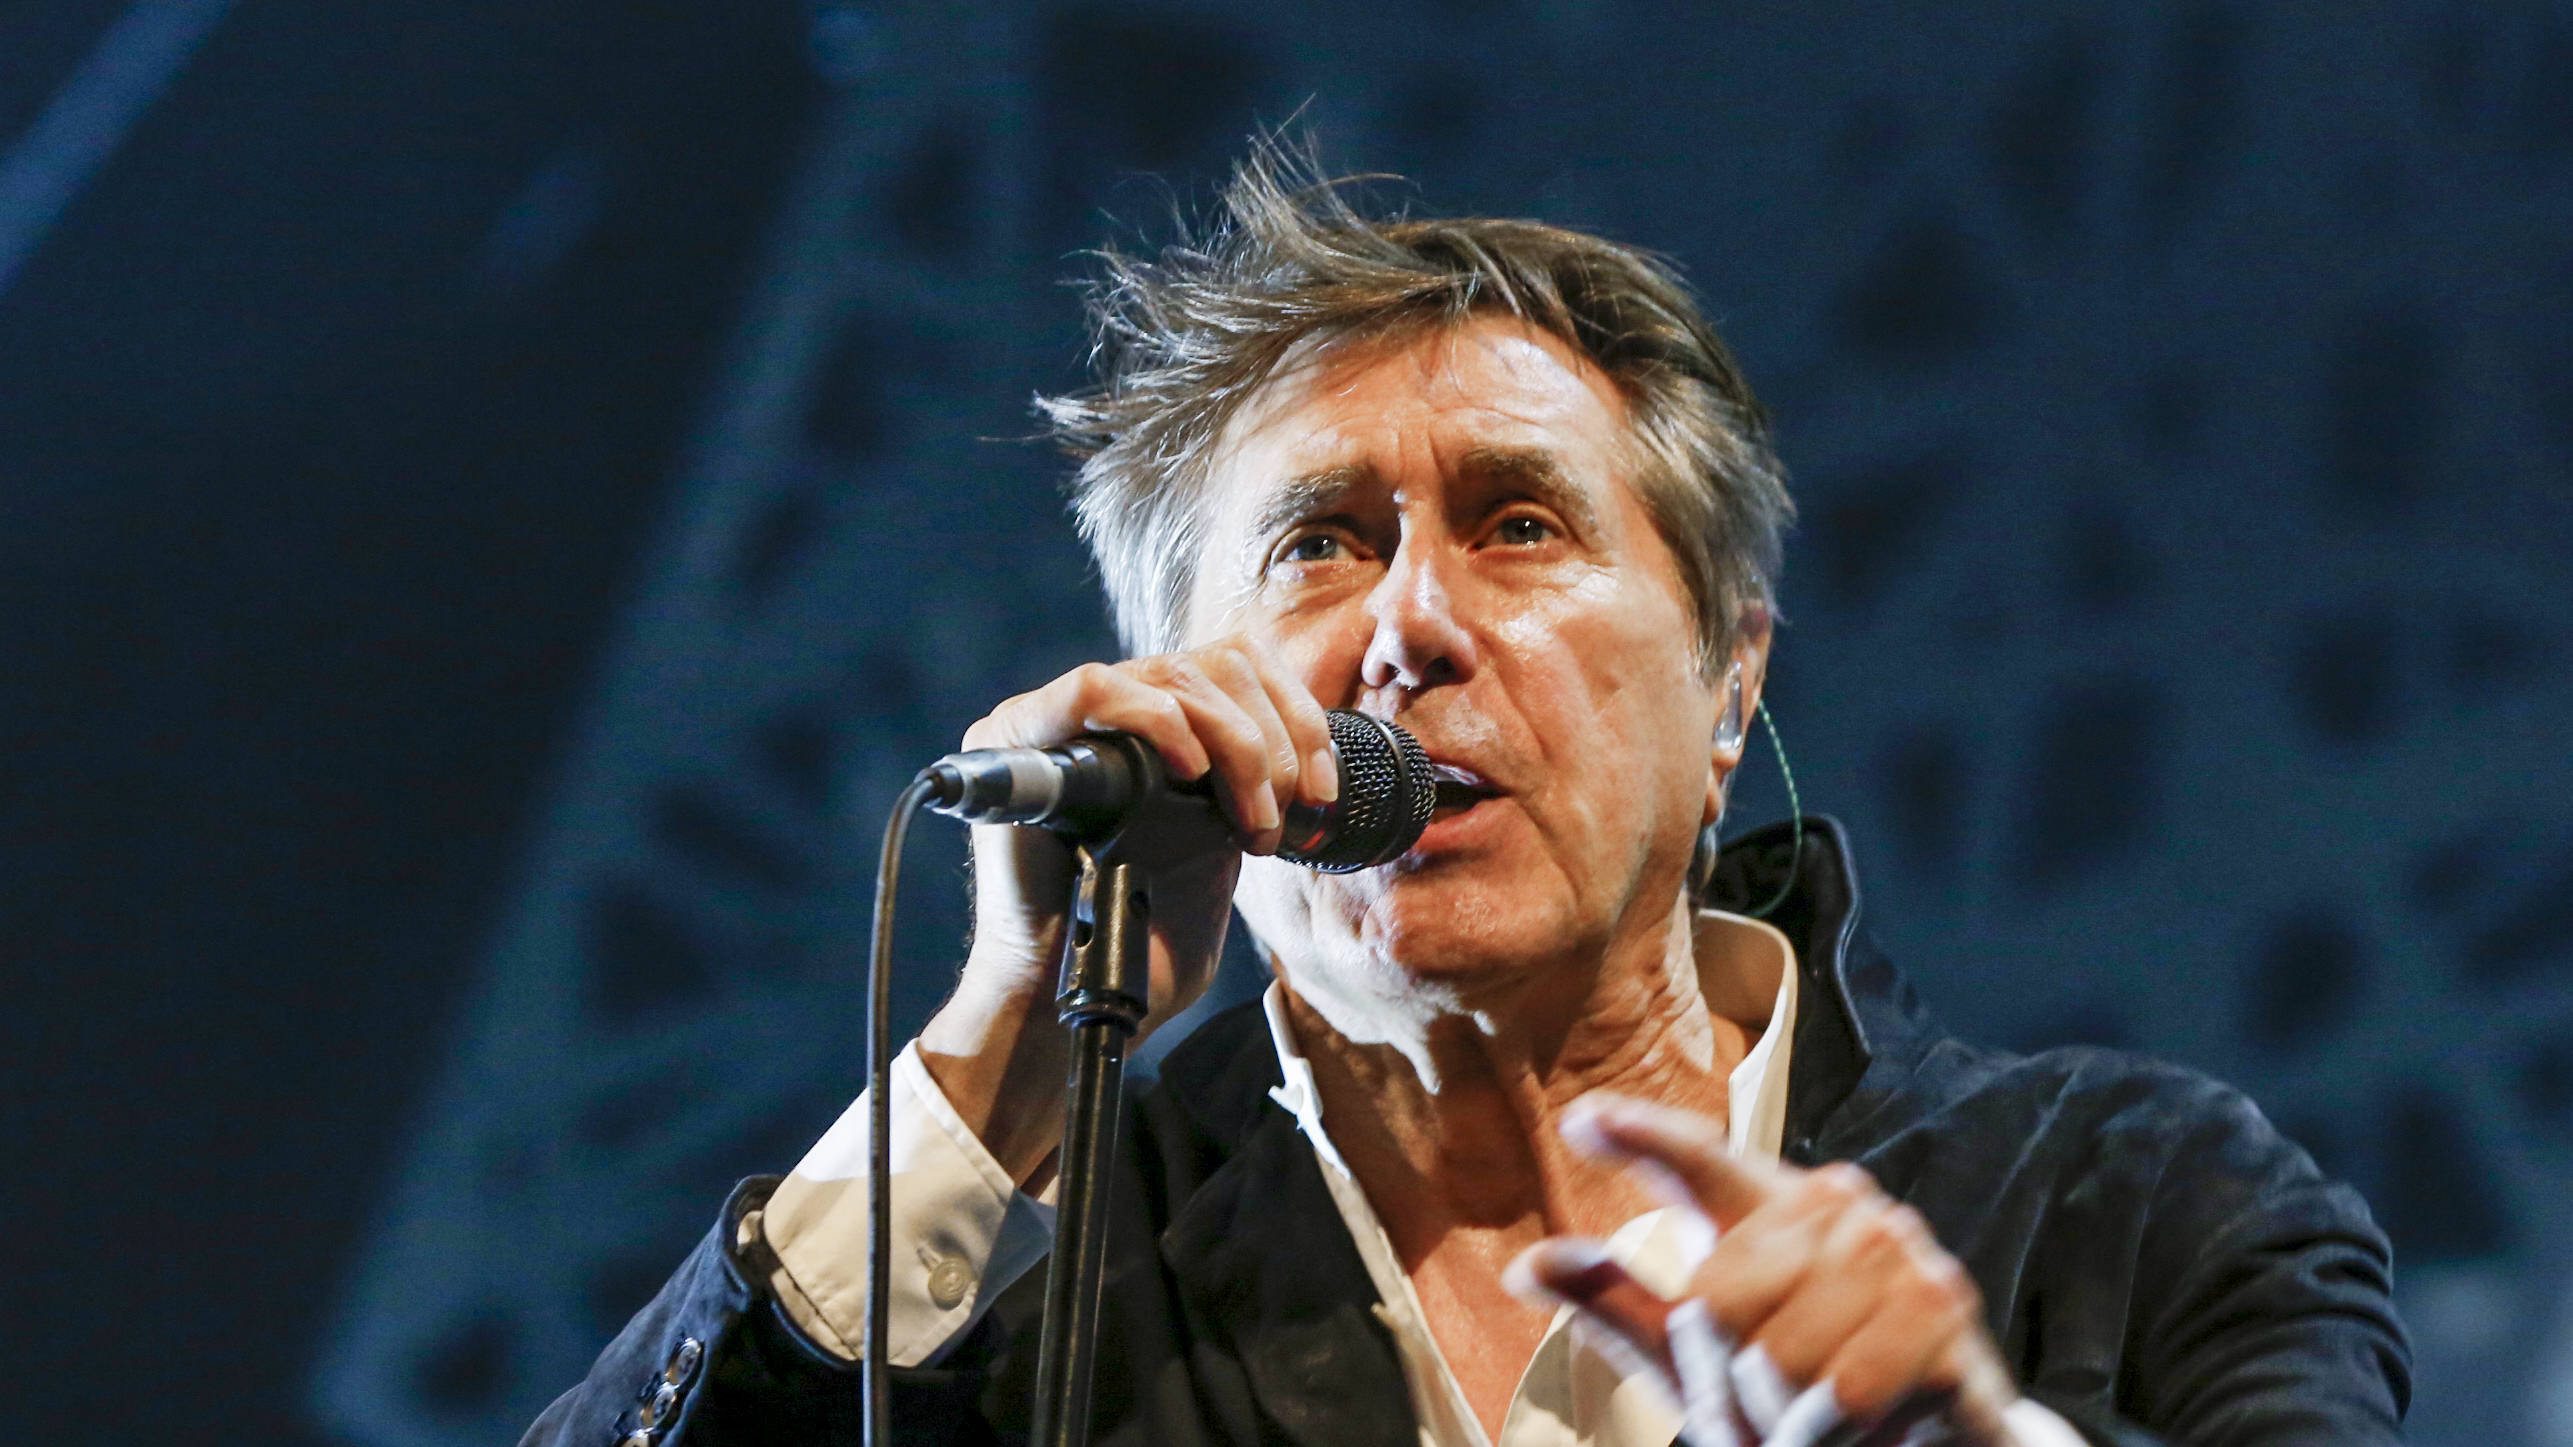 Bryan Ferry will play a special UK show to celebrate Roxy